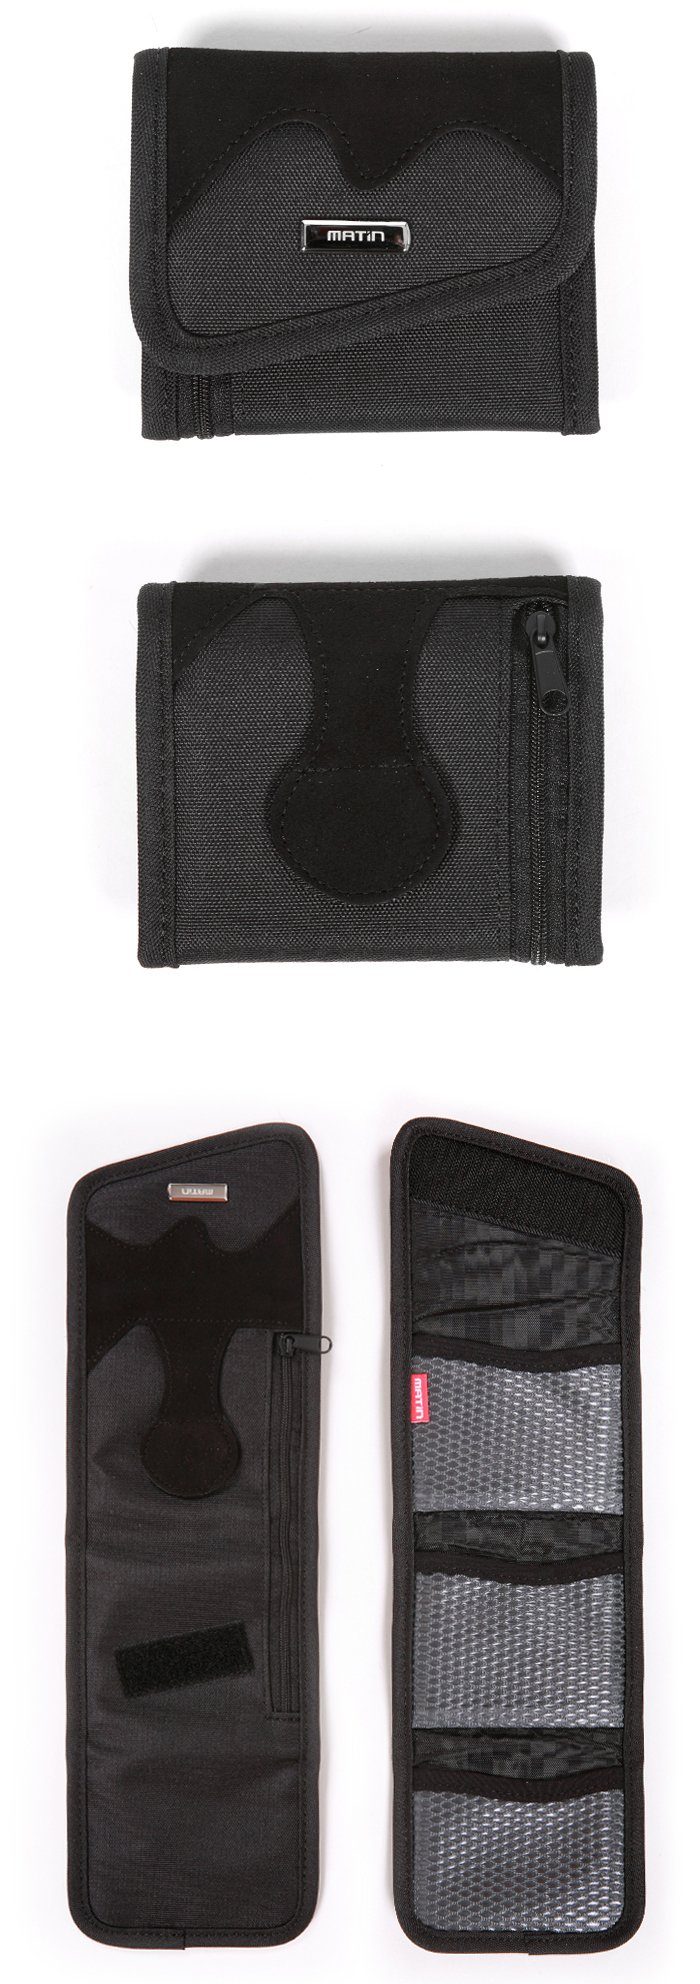 Matin Deluxe Filter Case Wallet - Large : 3pcs Under 67-82mm Filters